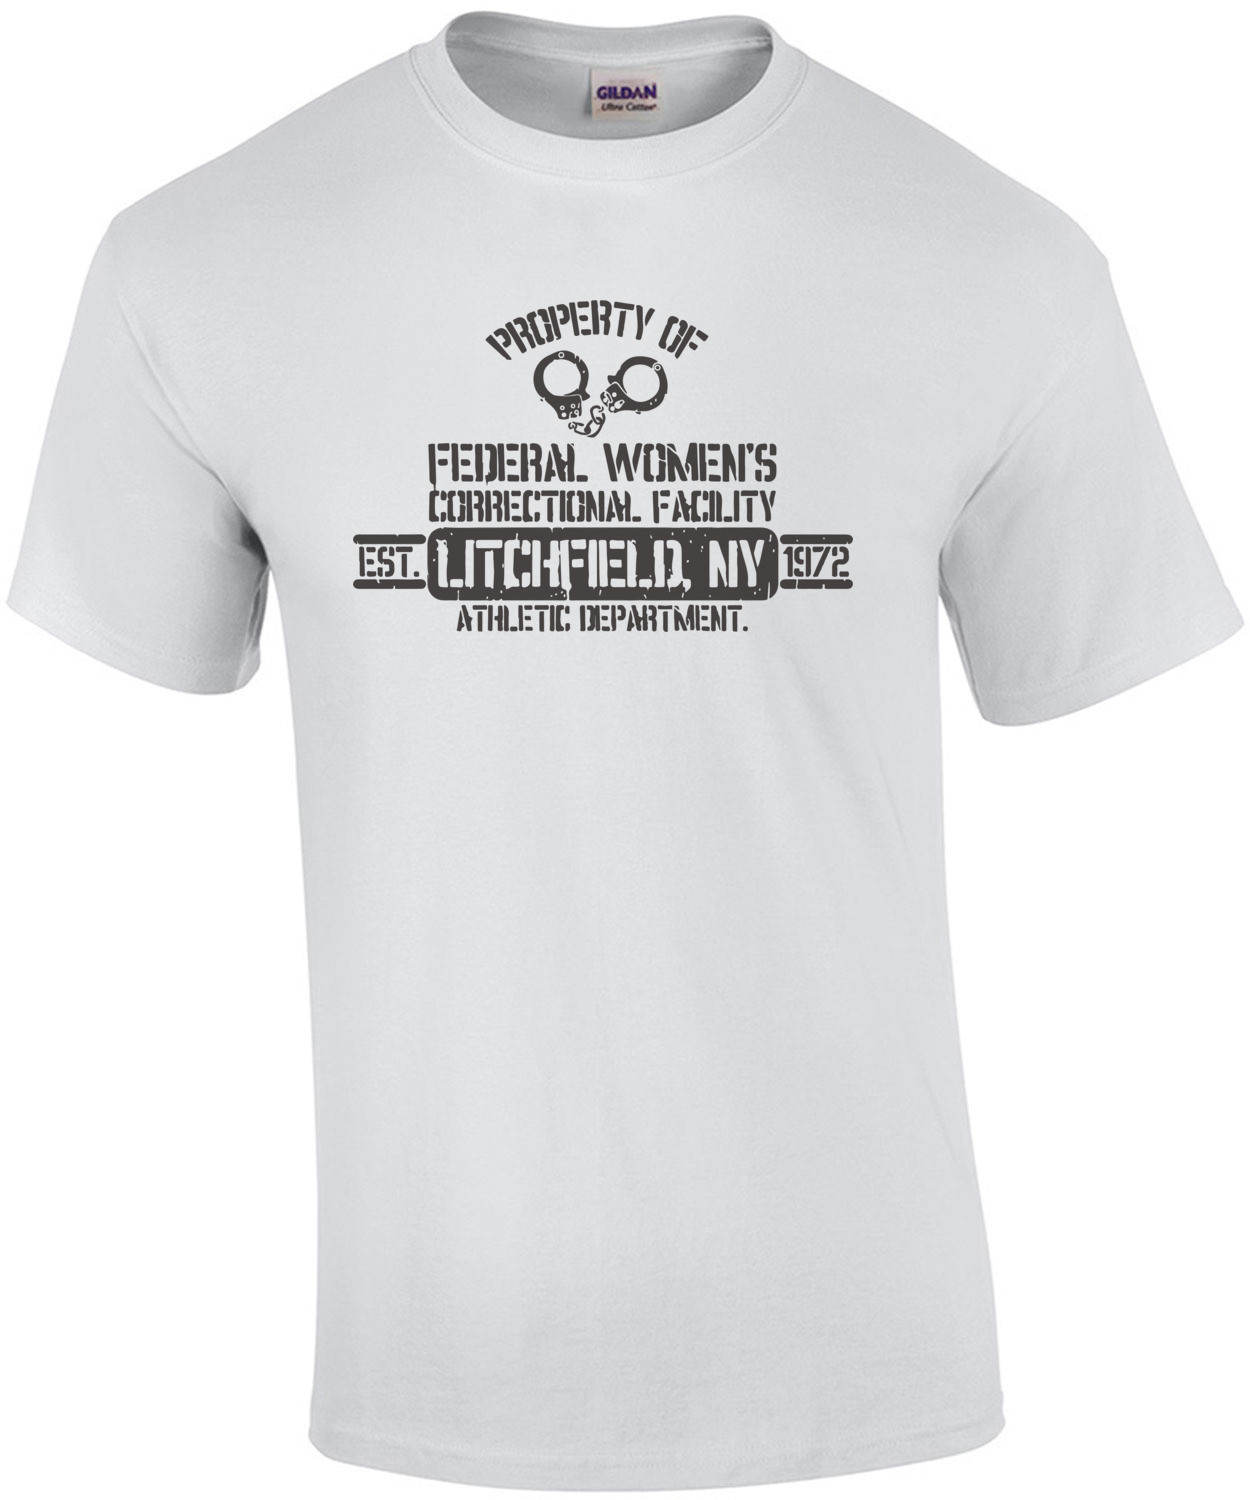 Litchfield Prison - Orange is the New Black T-Shirt